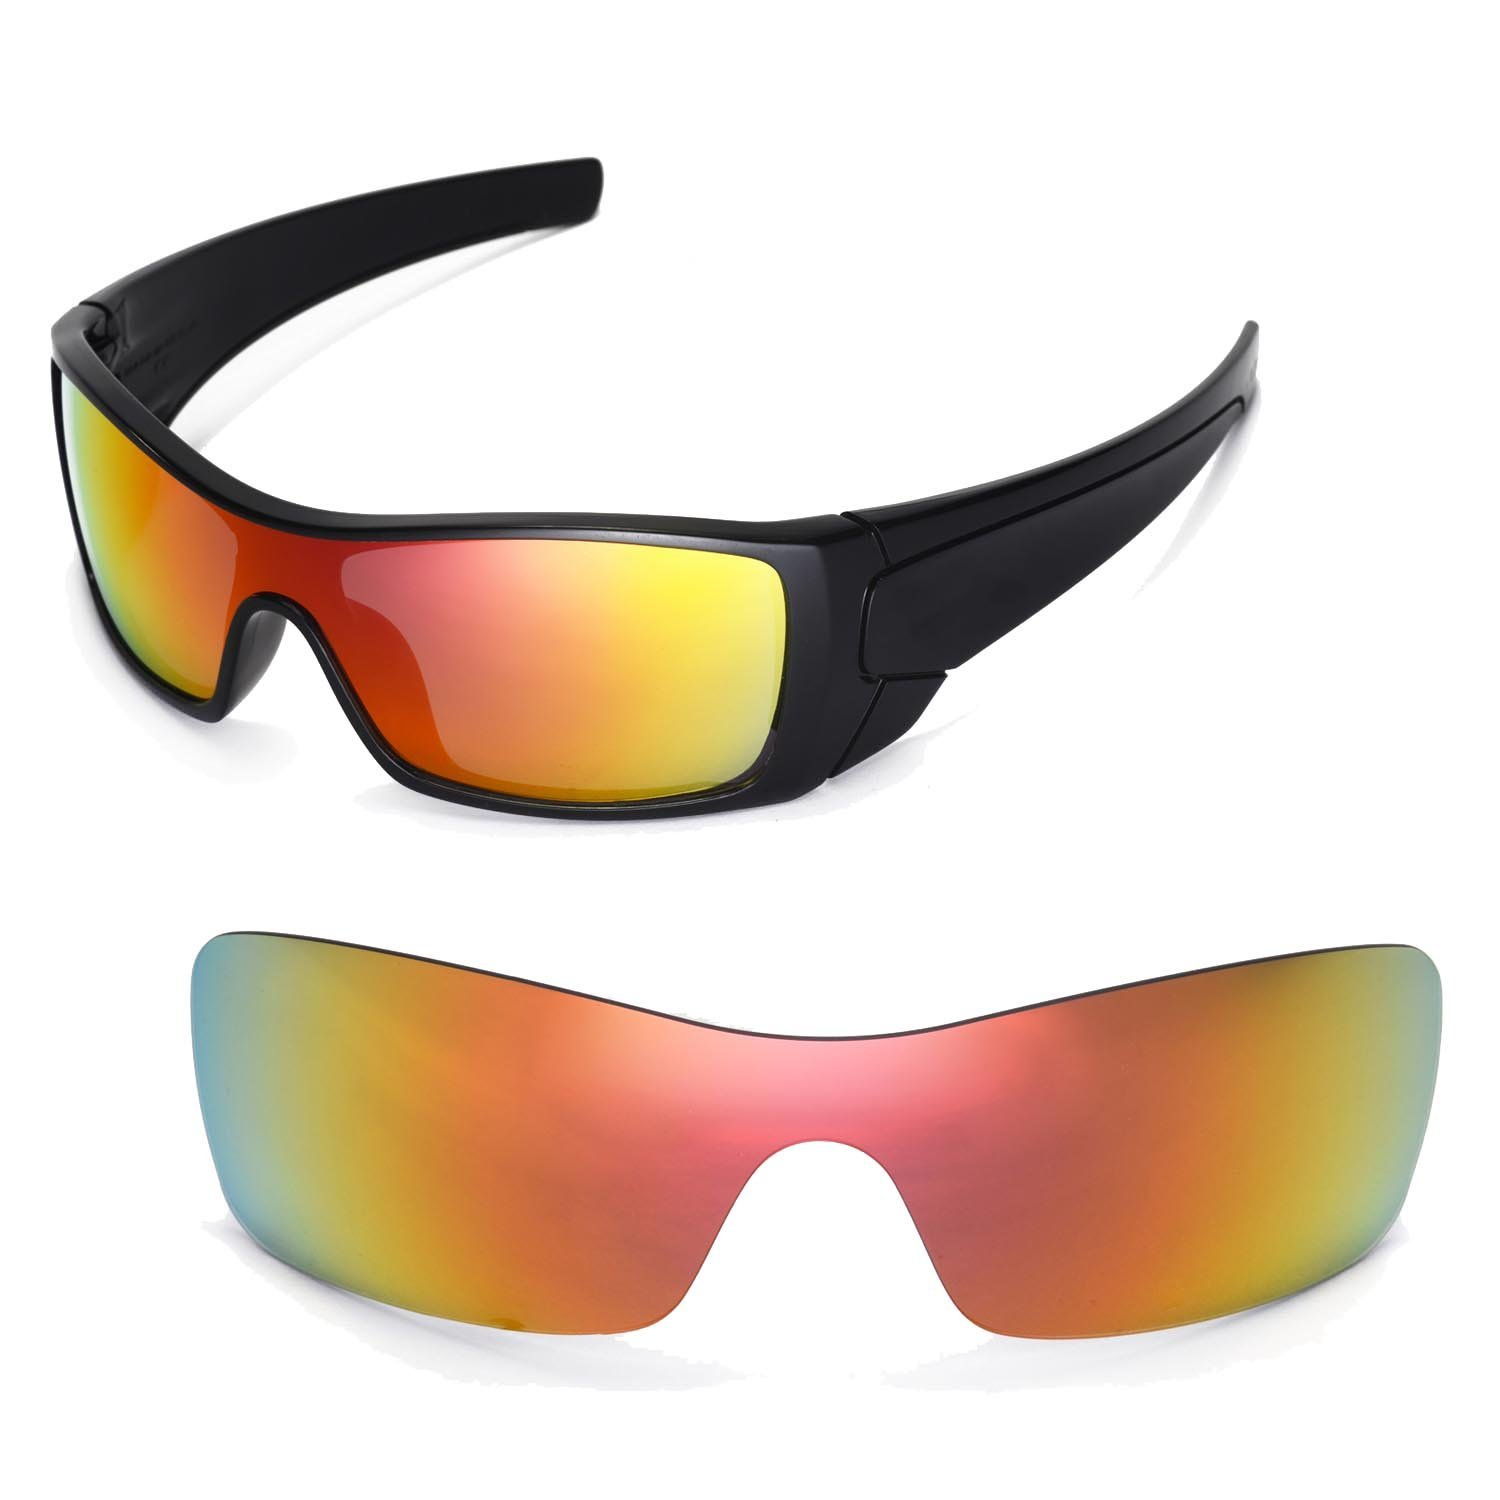 Amazon.com : Walleva Replacement Lenses for Oakley Batwolf Sunglasses - Multiple Options Available (Fire Red Mirror Coated - Polarized)